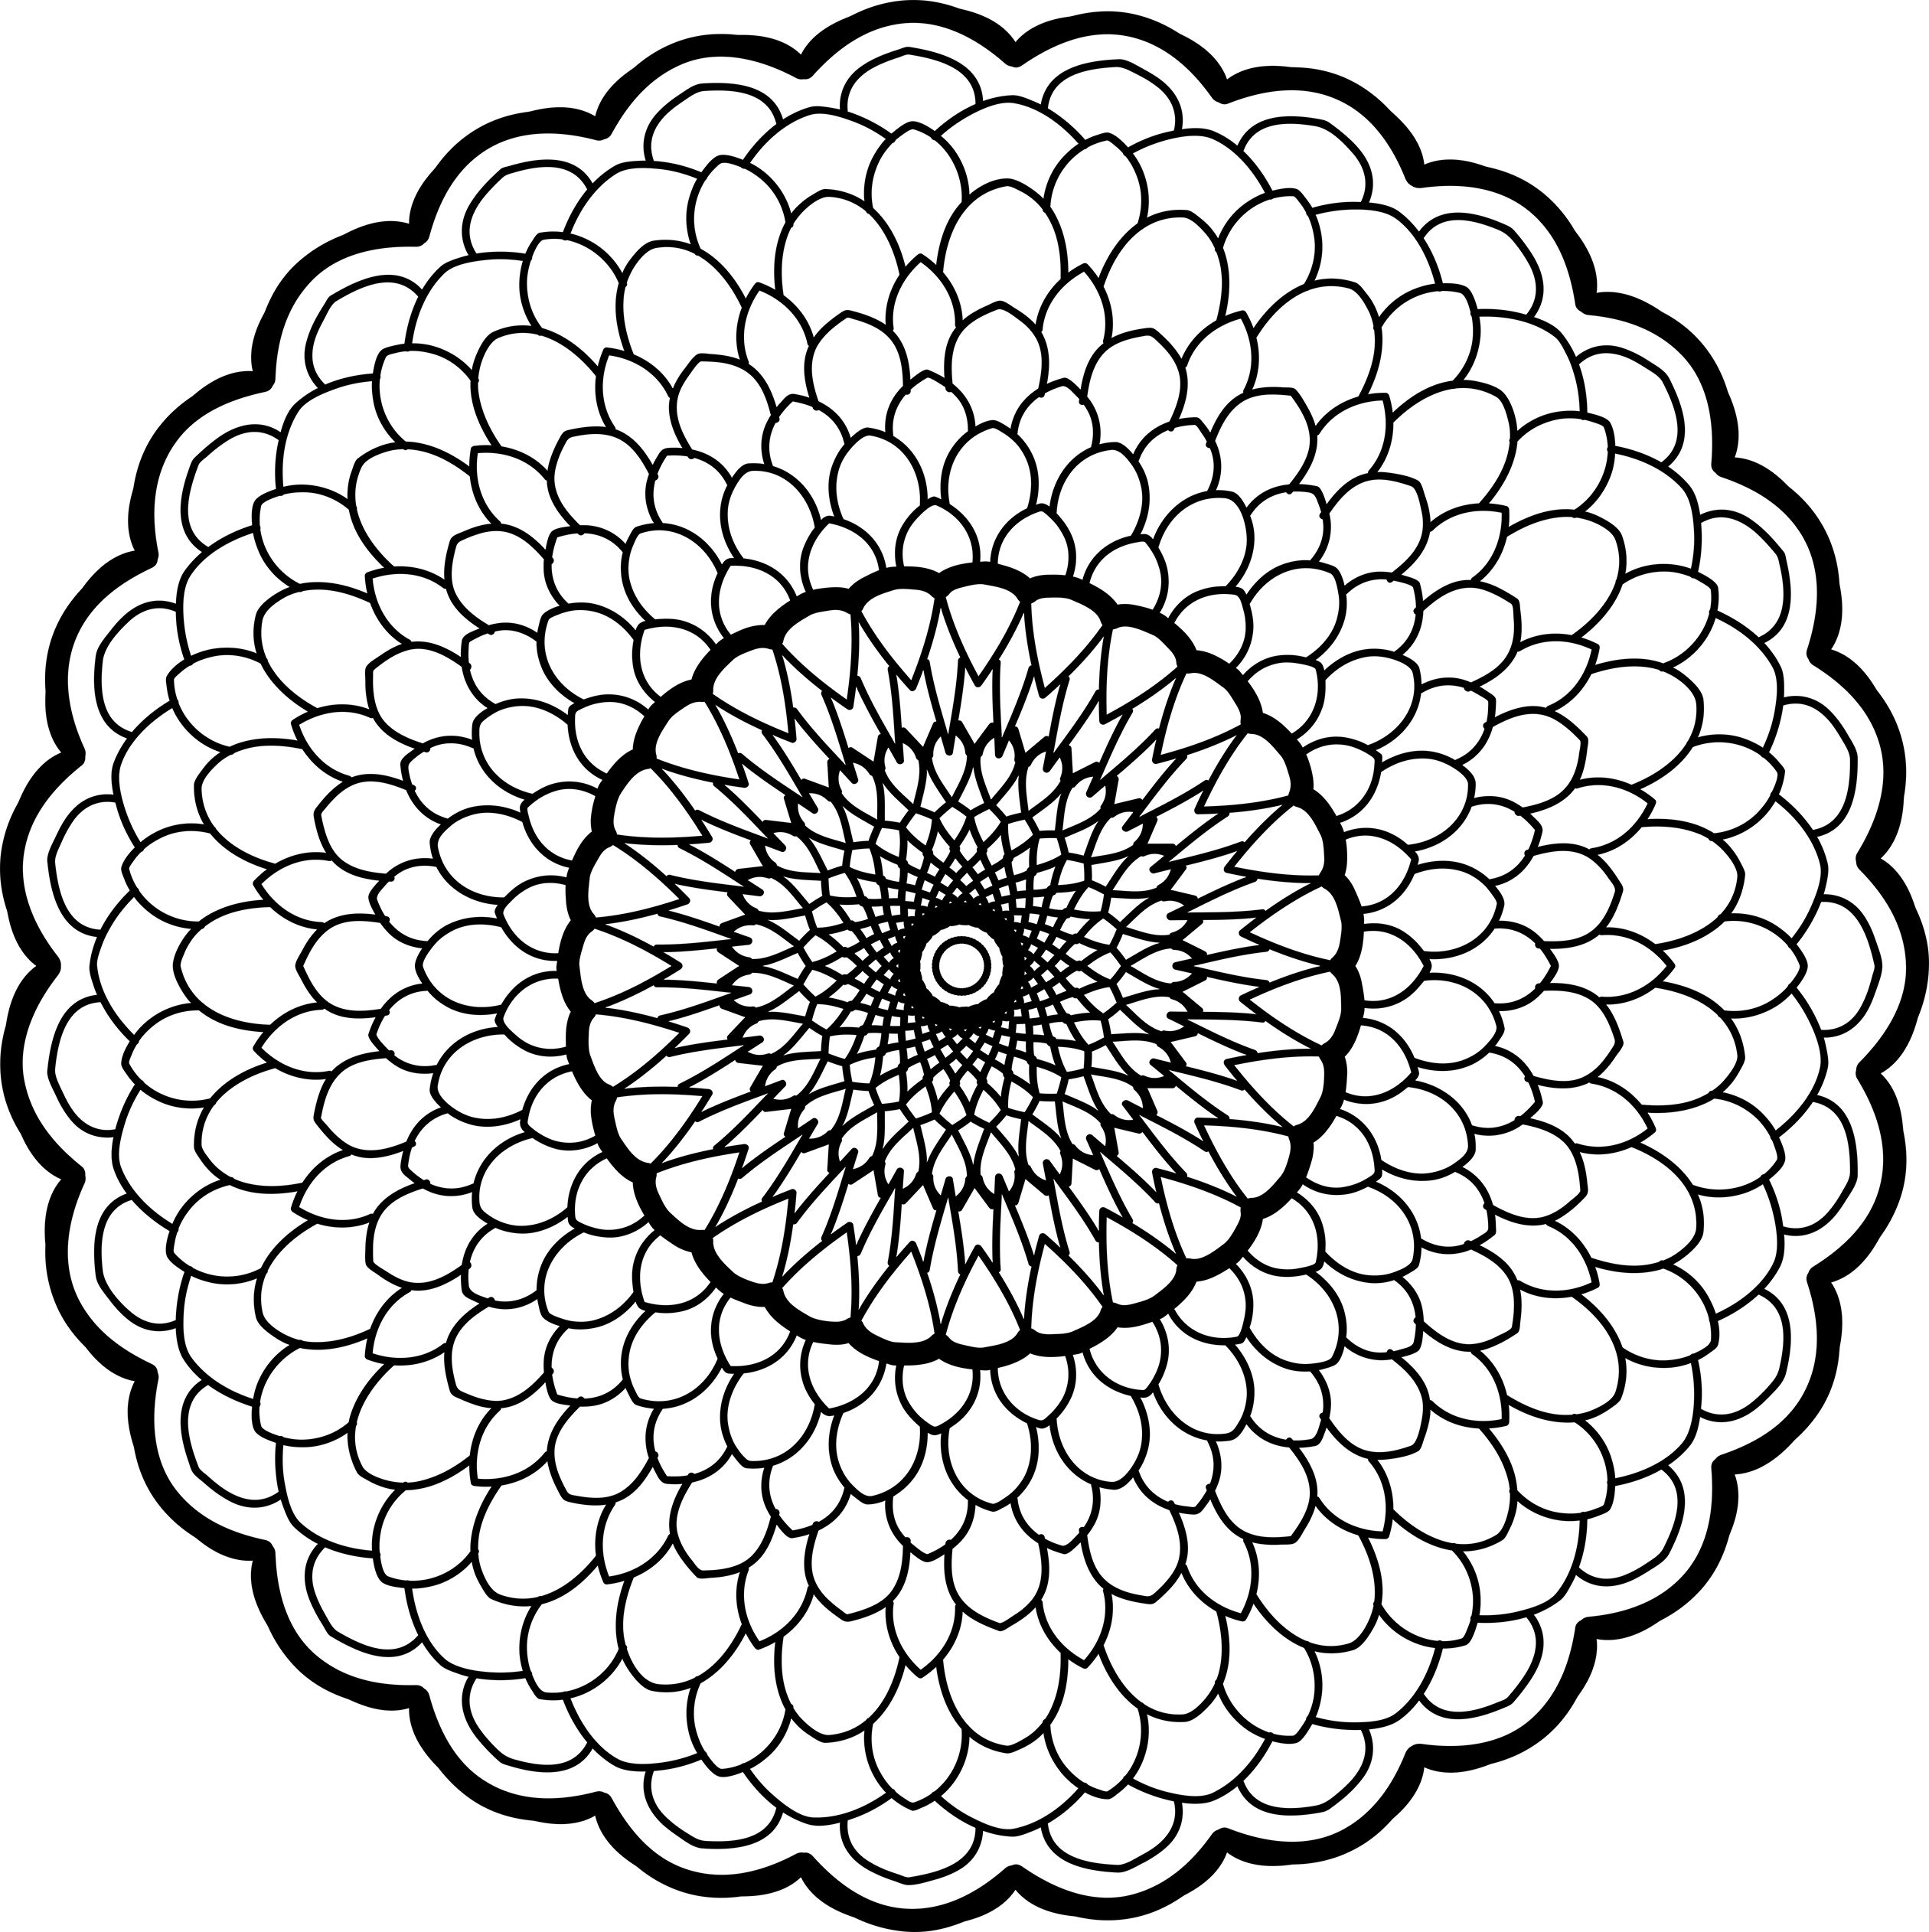 volume four of the geometry and mandala coloring books